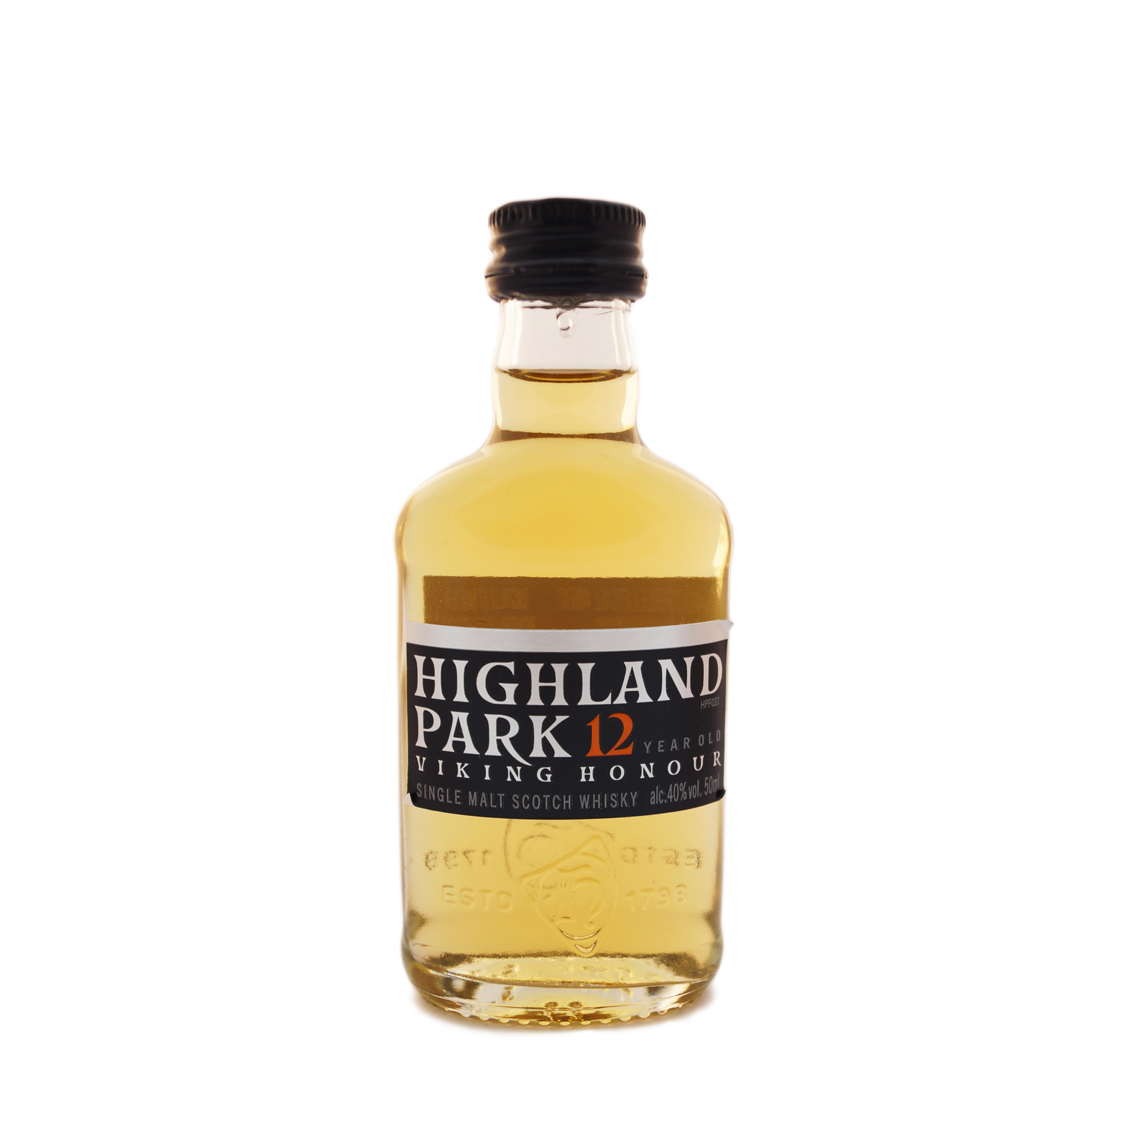 WHISKY-HIGHLAND-PARK-SMSW-12-YO-VIKING-HONOUR-1